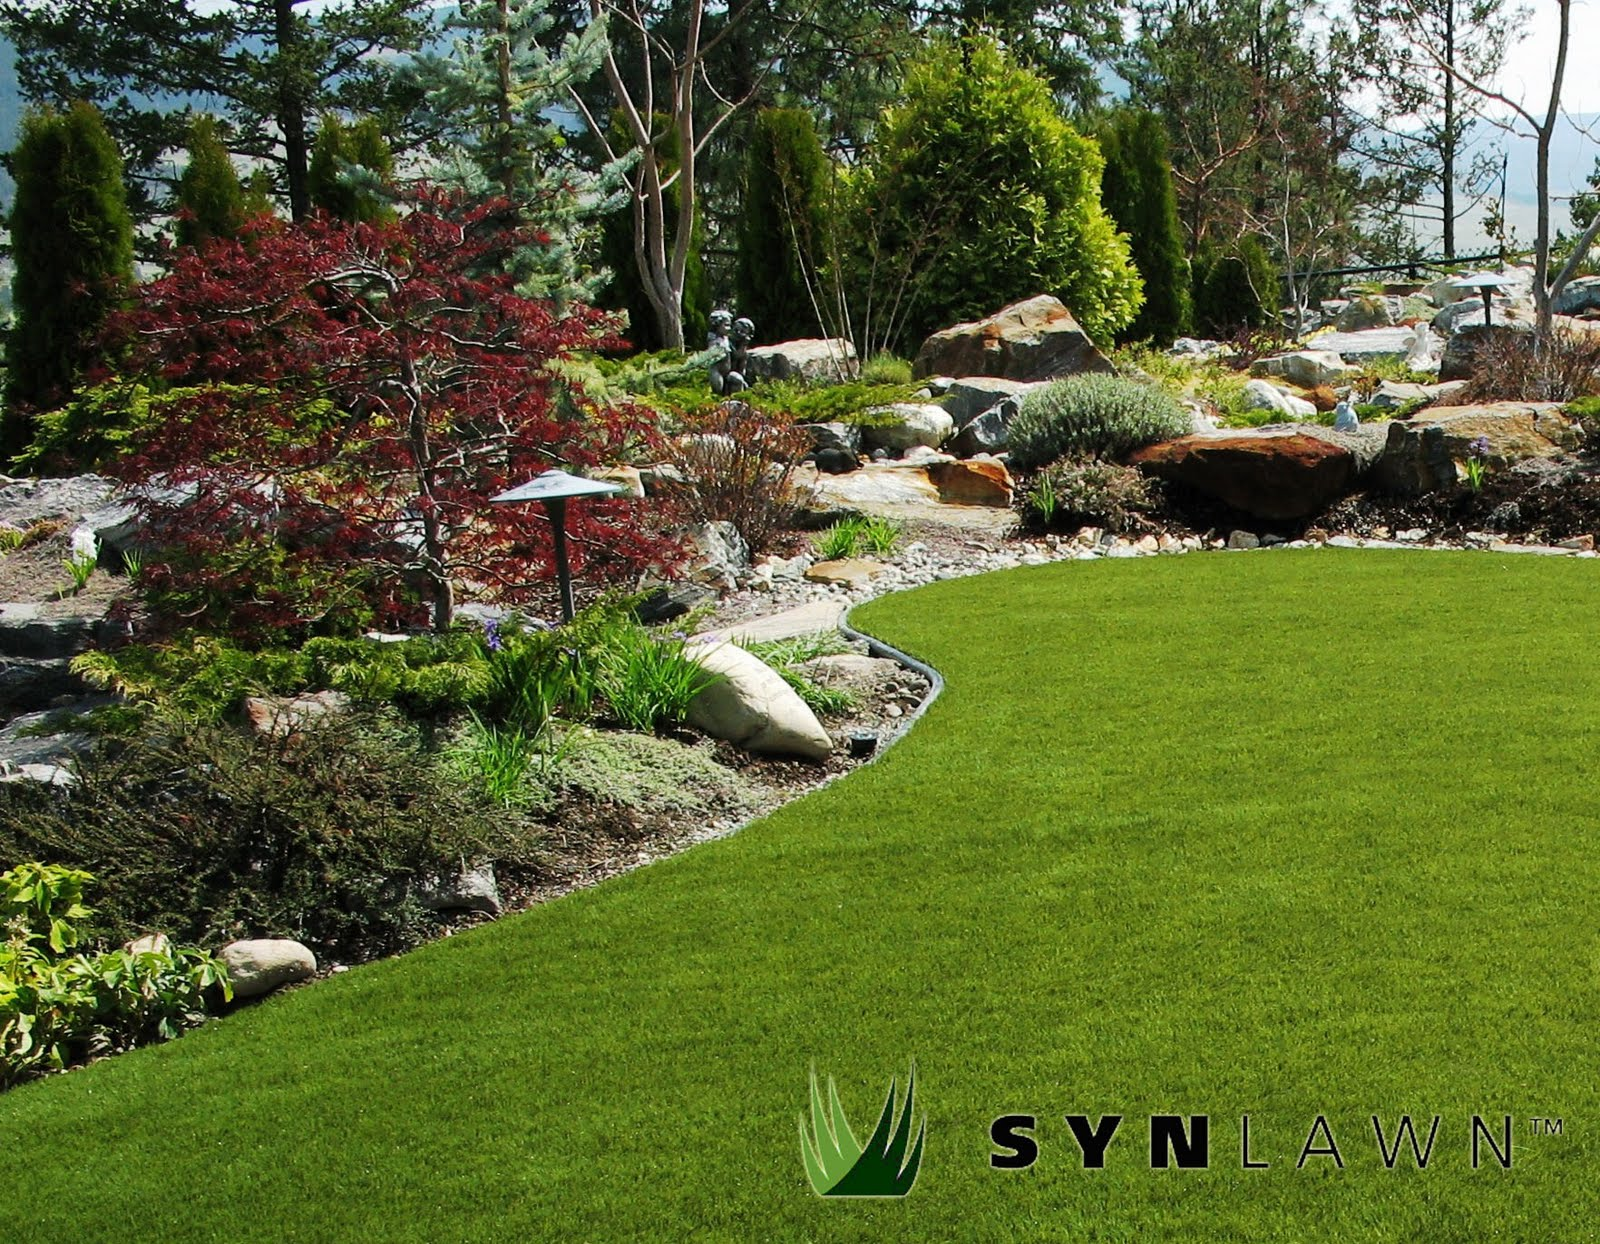 Synlawn okanagan february 2010 for Residential landscaping